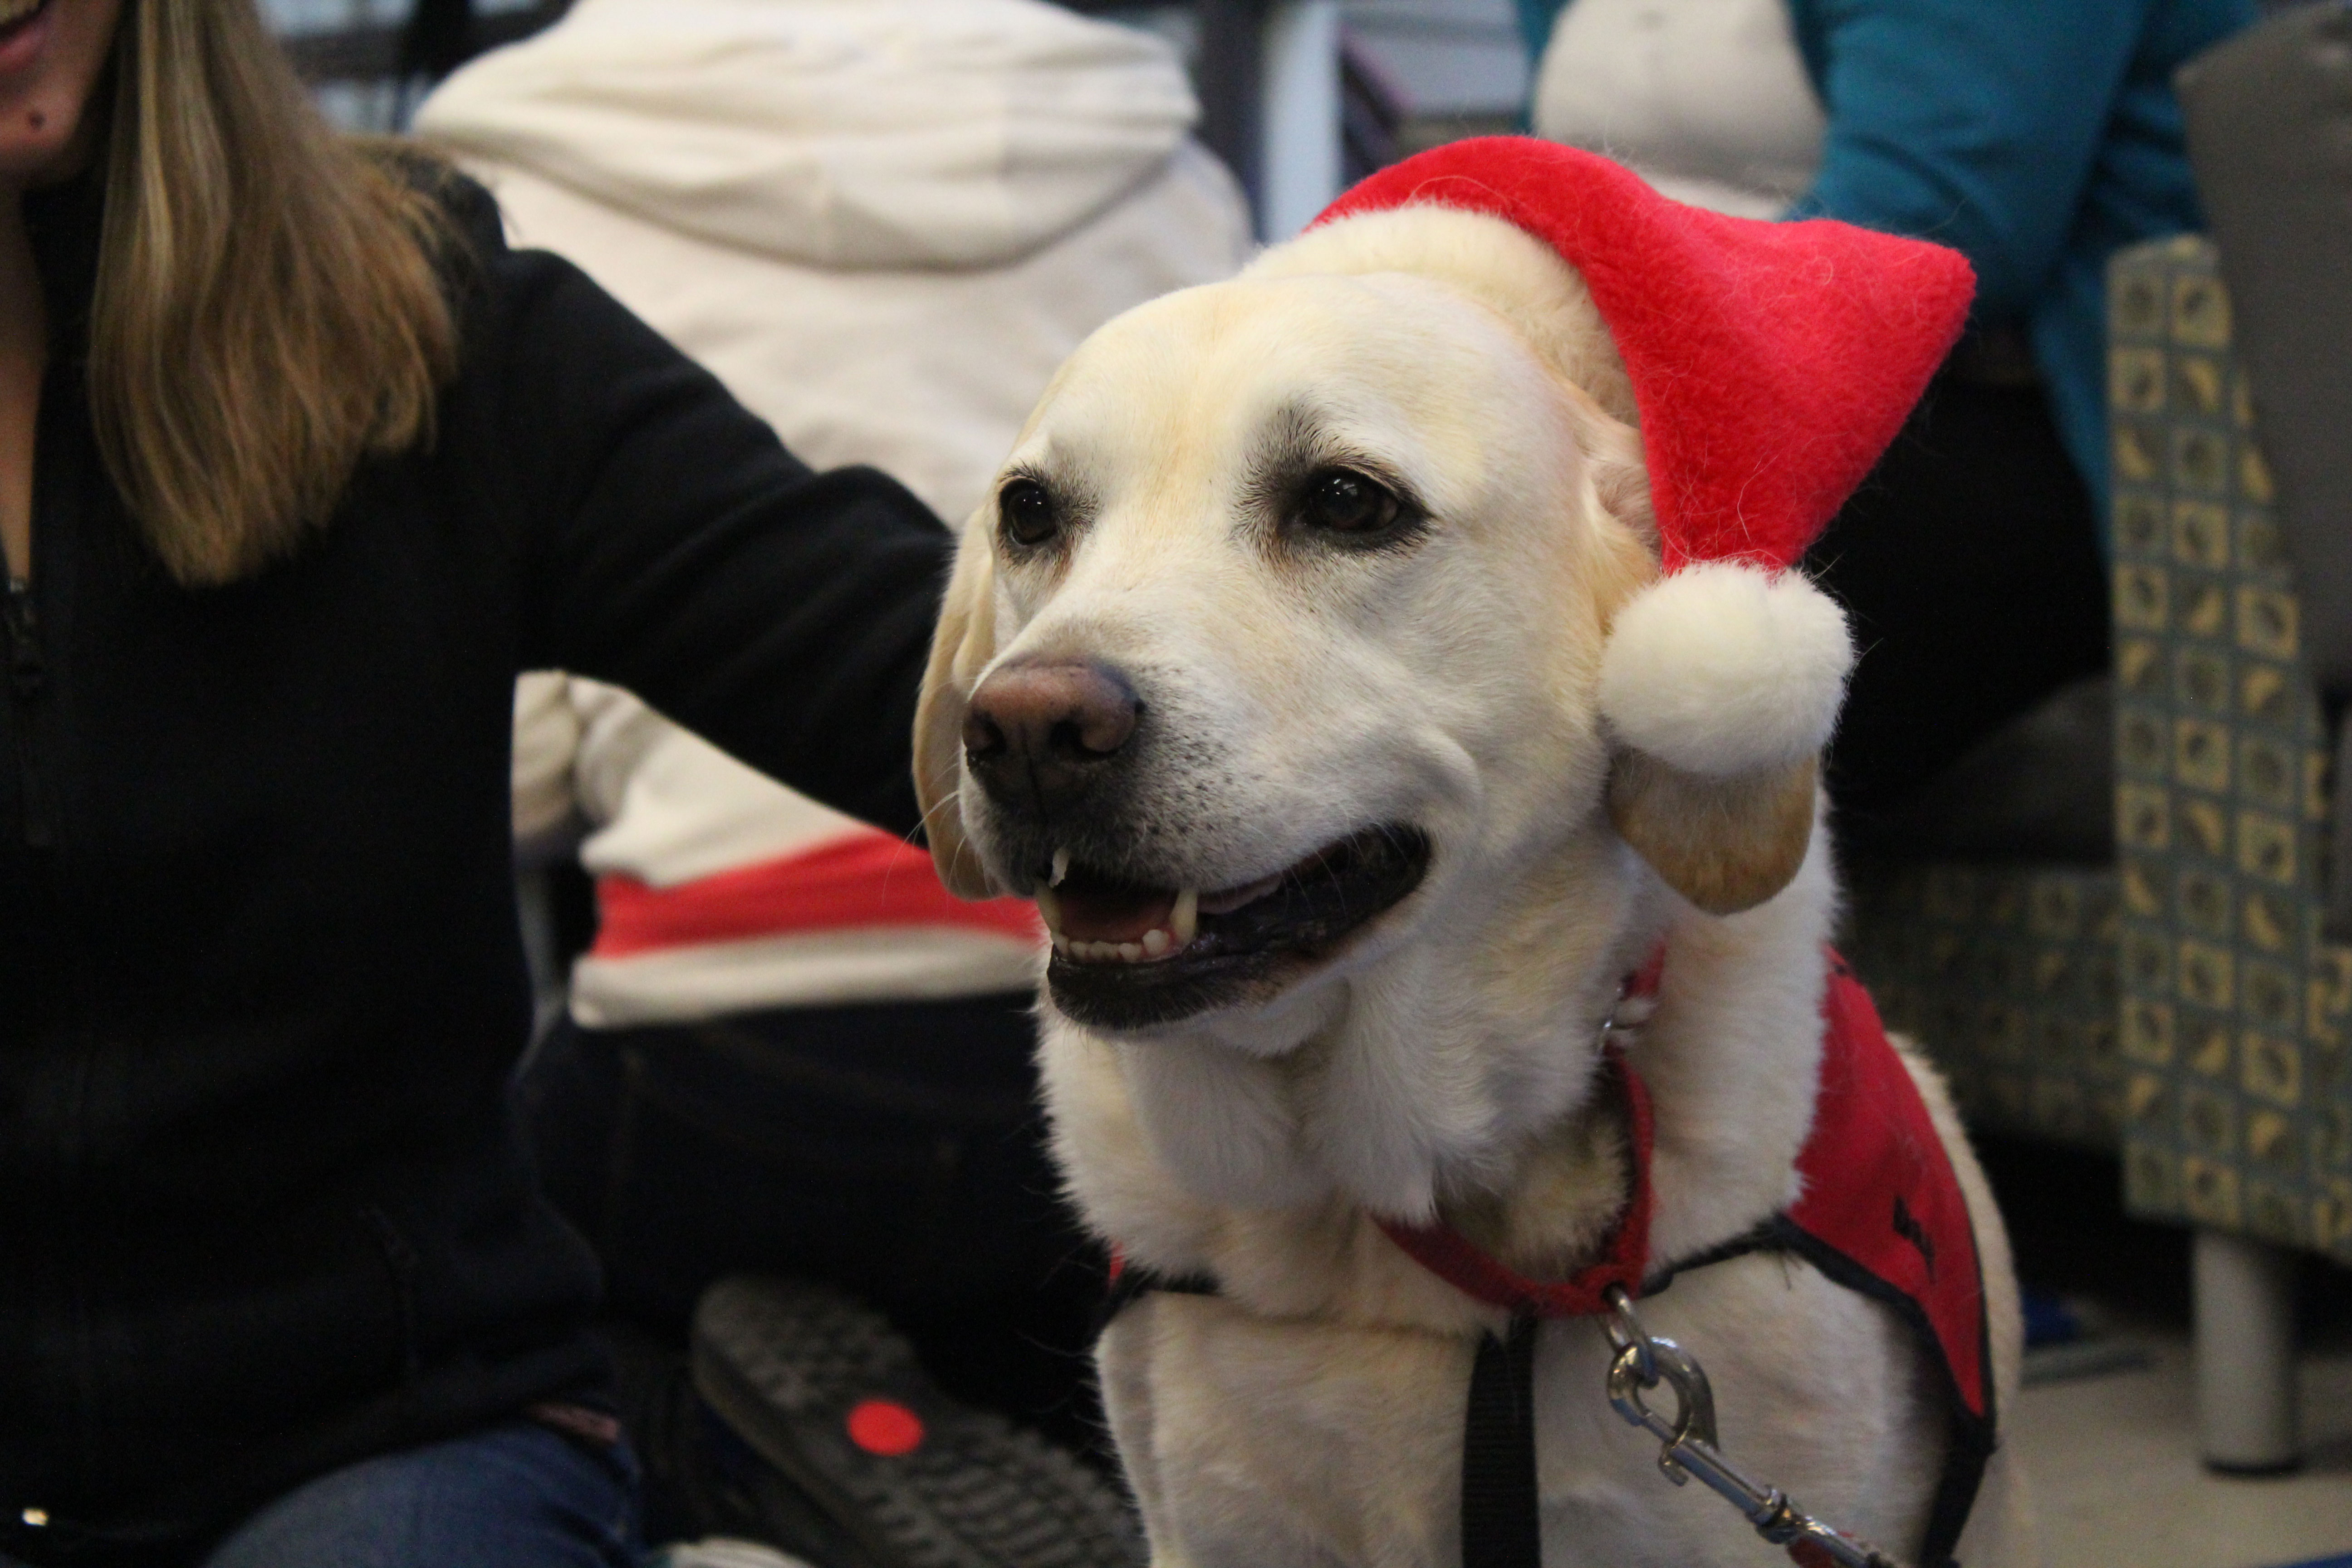 Bailey,8, is a therapy dog that visited the Sheridan Trafalgar Campus to help relax students during exam time.